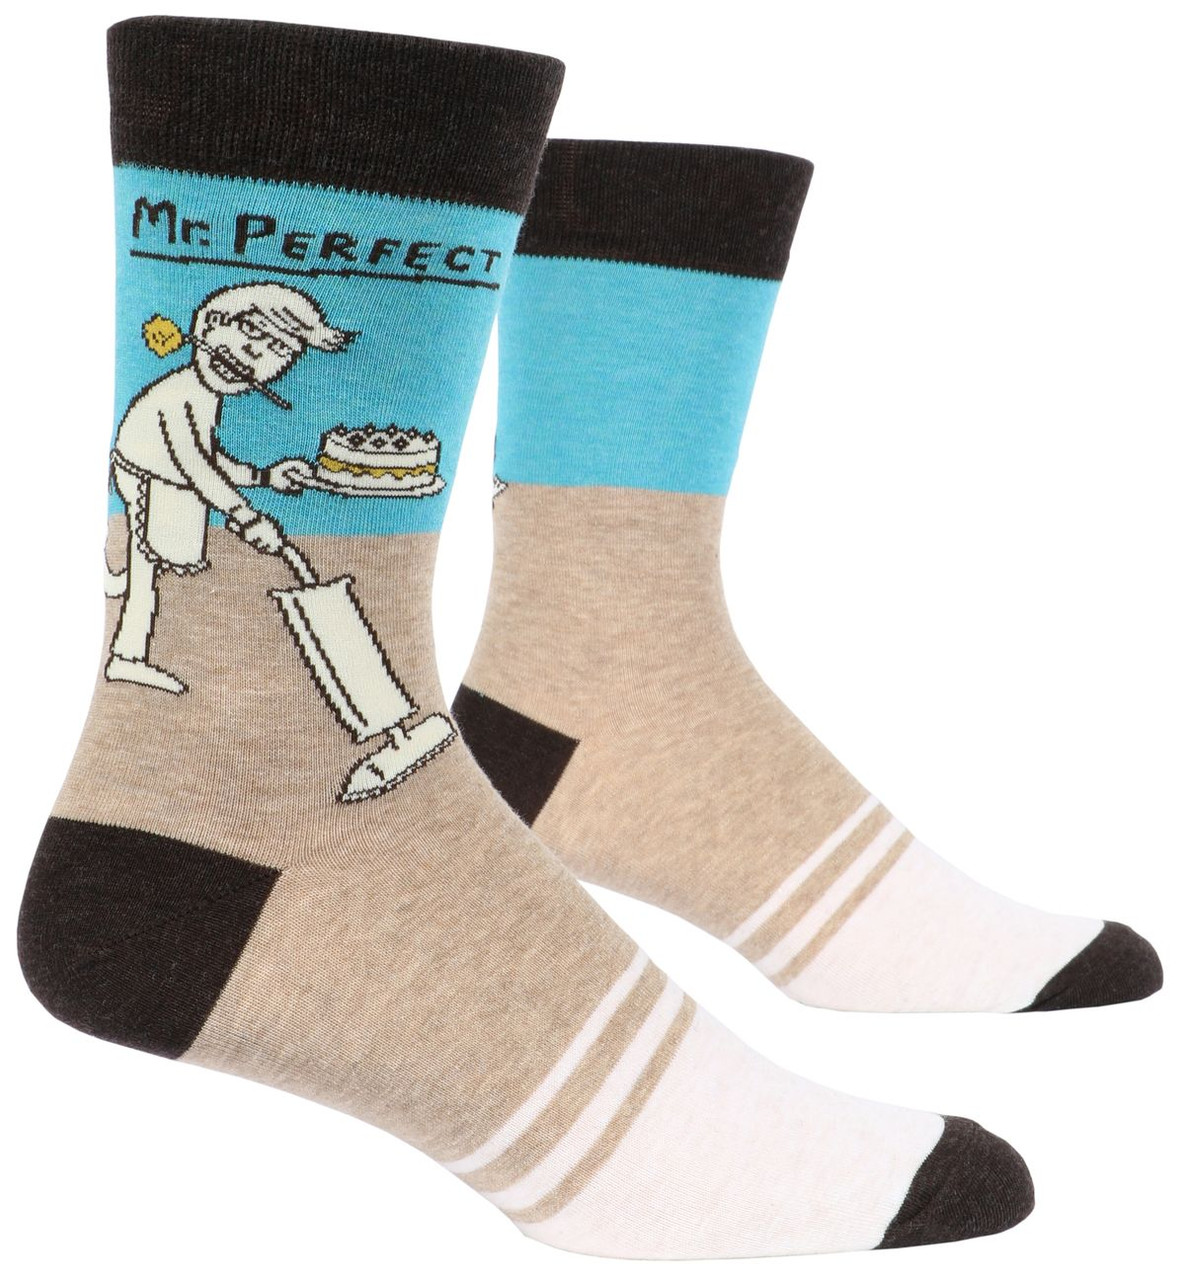 MR. PERFECT - Men's Socks